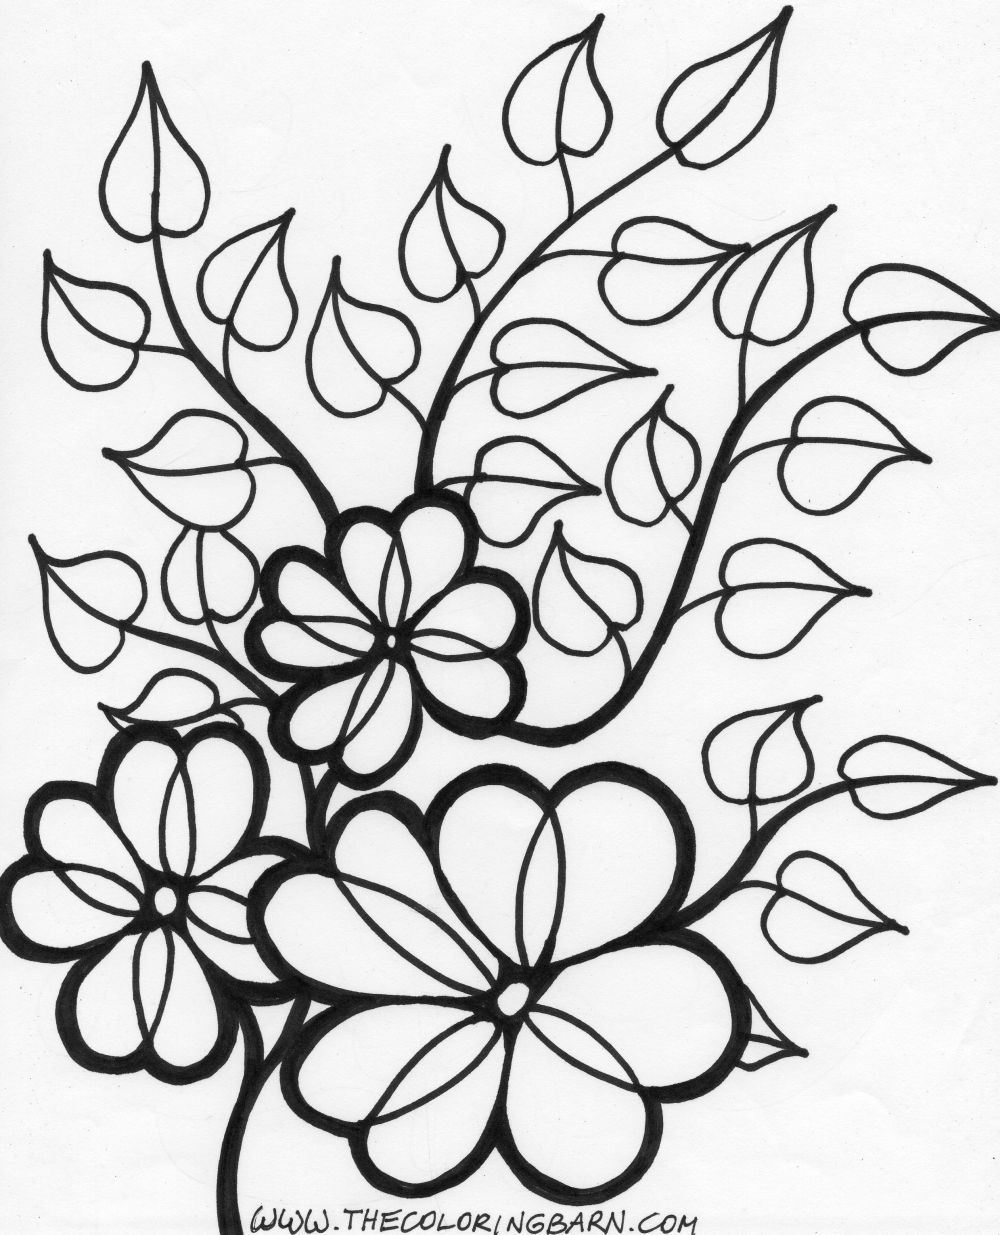 flower vines coloring page wild printable free coloring pages for kids - Cool Printable Coloring Pages